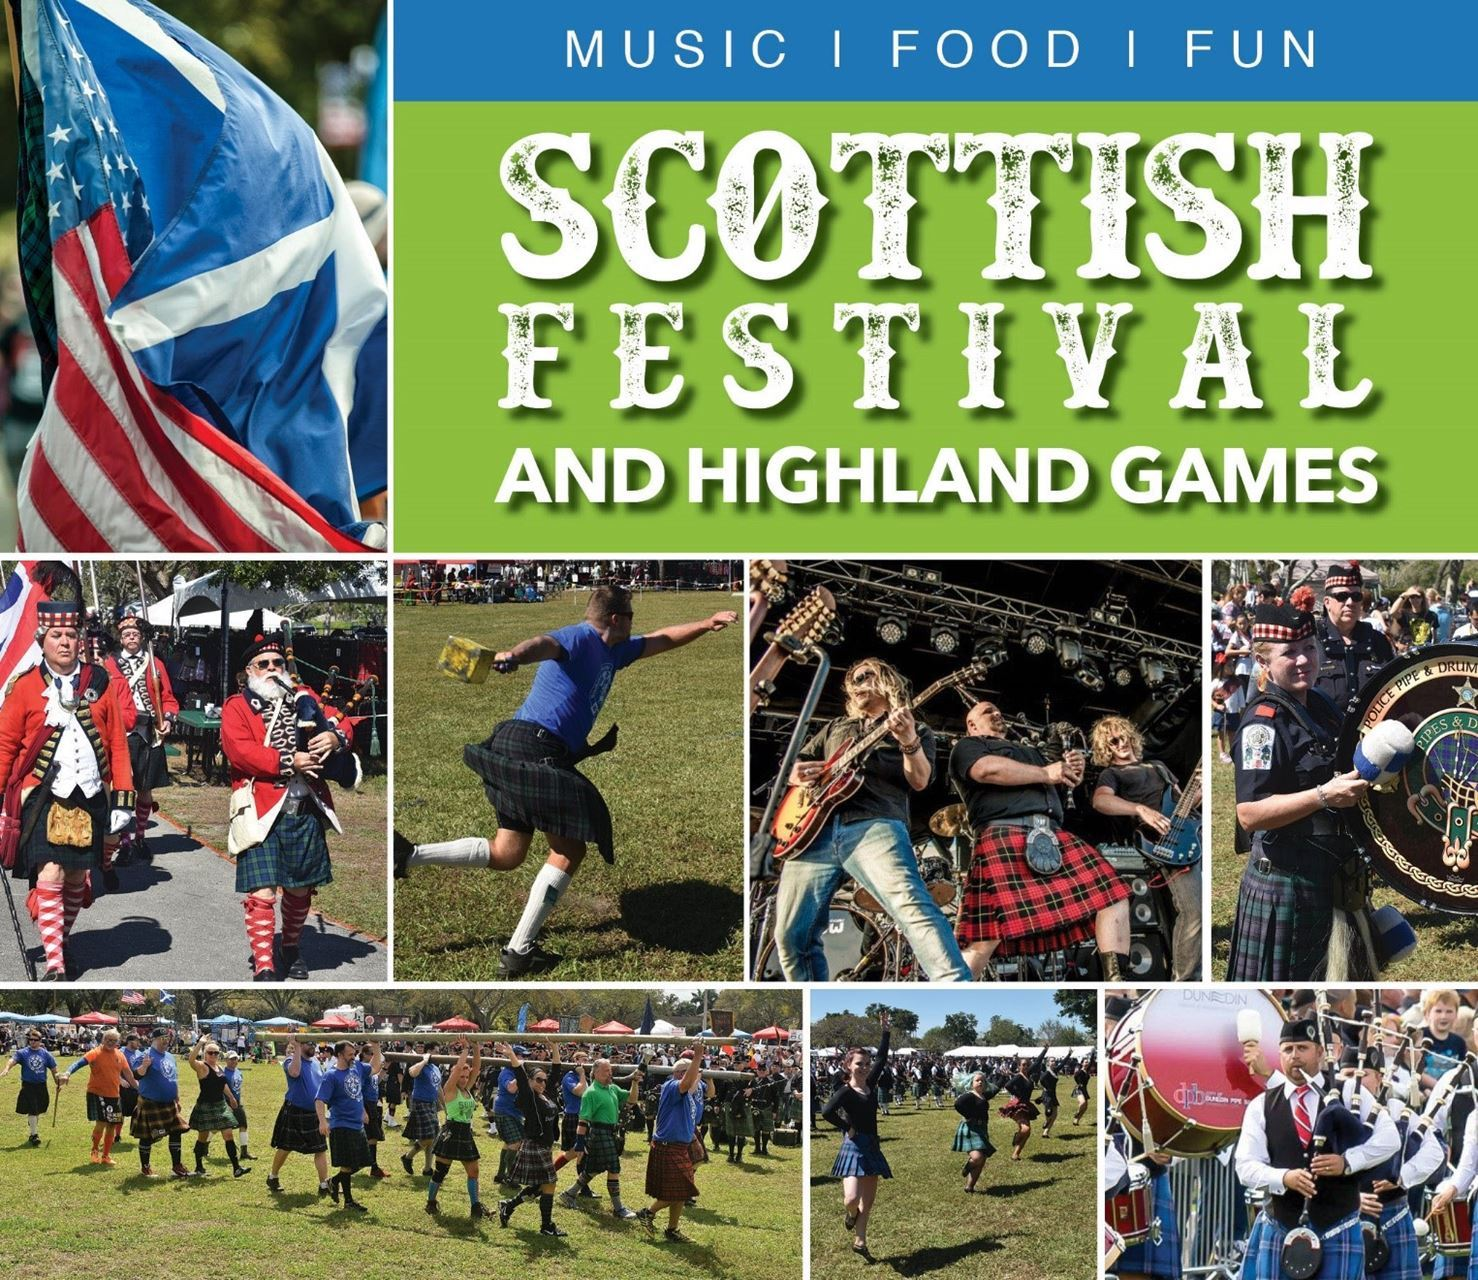 Scottish Festival and Highland Games Music - Food - Fun